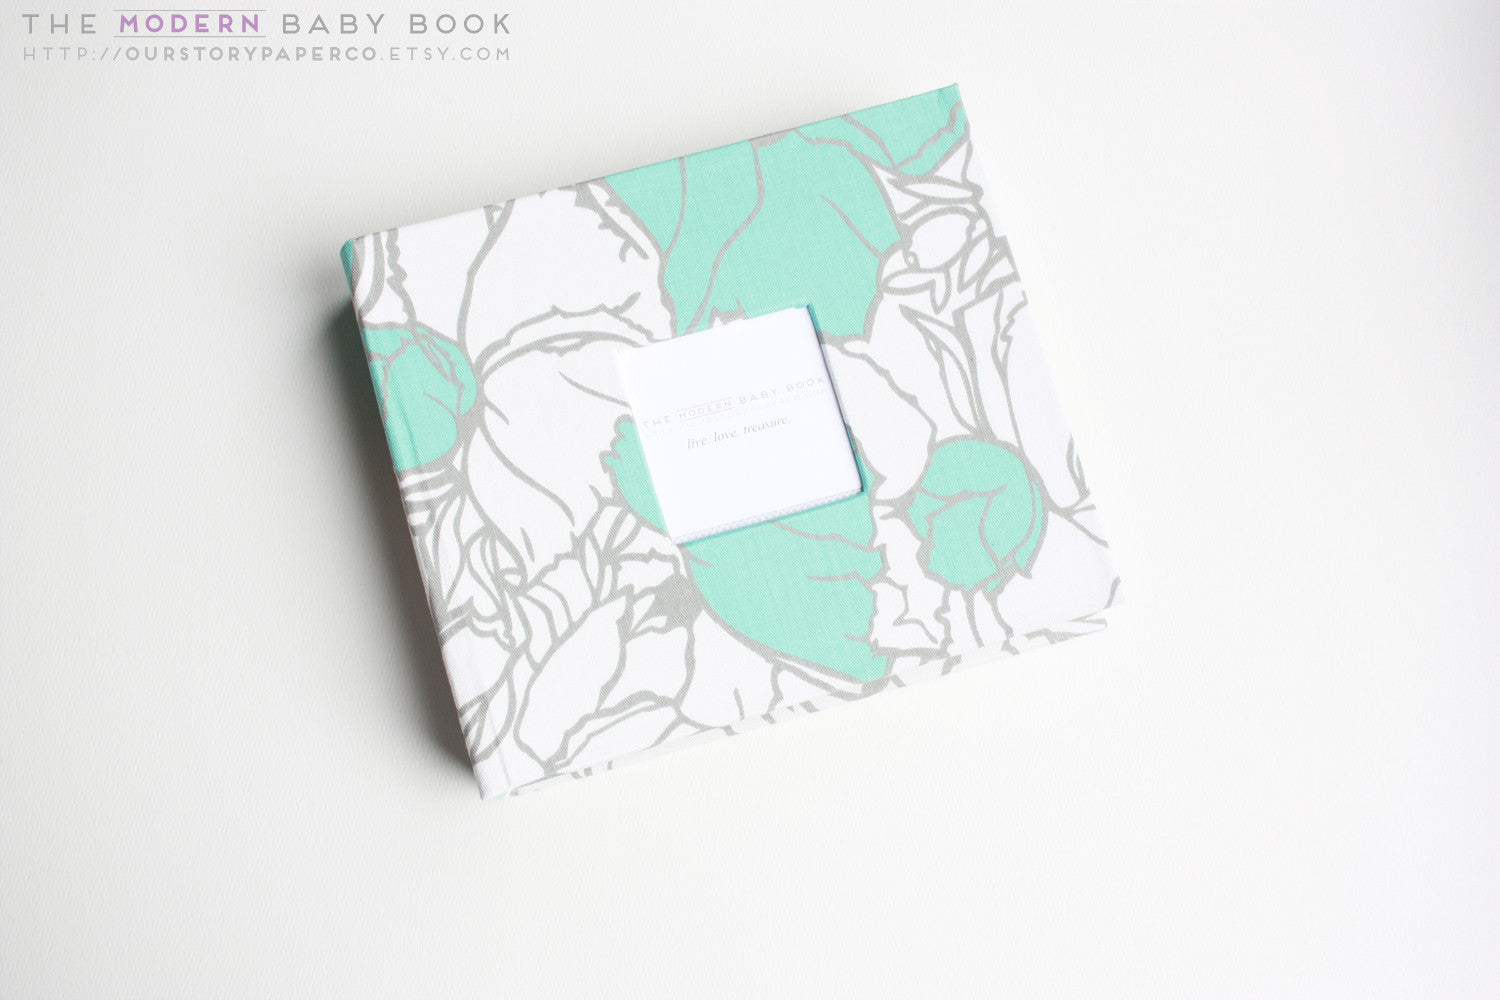 Teal Cottage Flowers Modern Baby Book